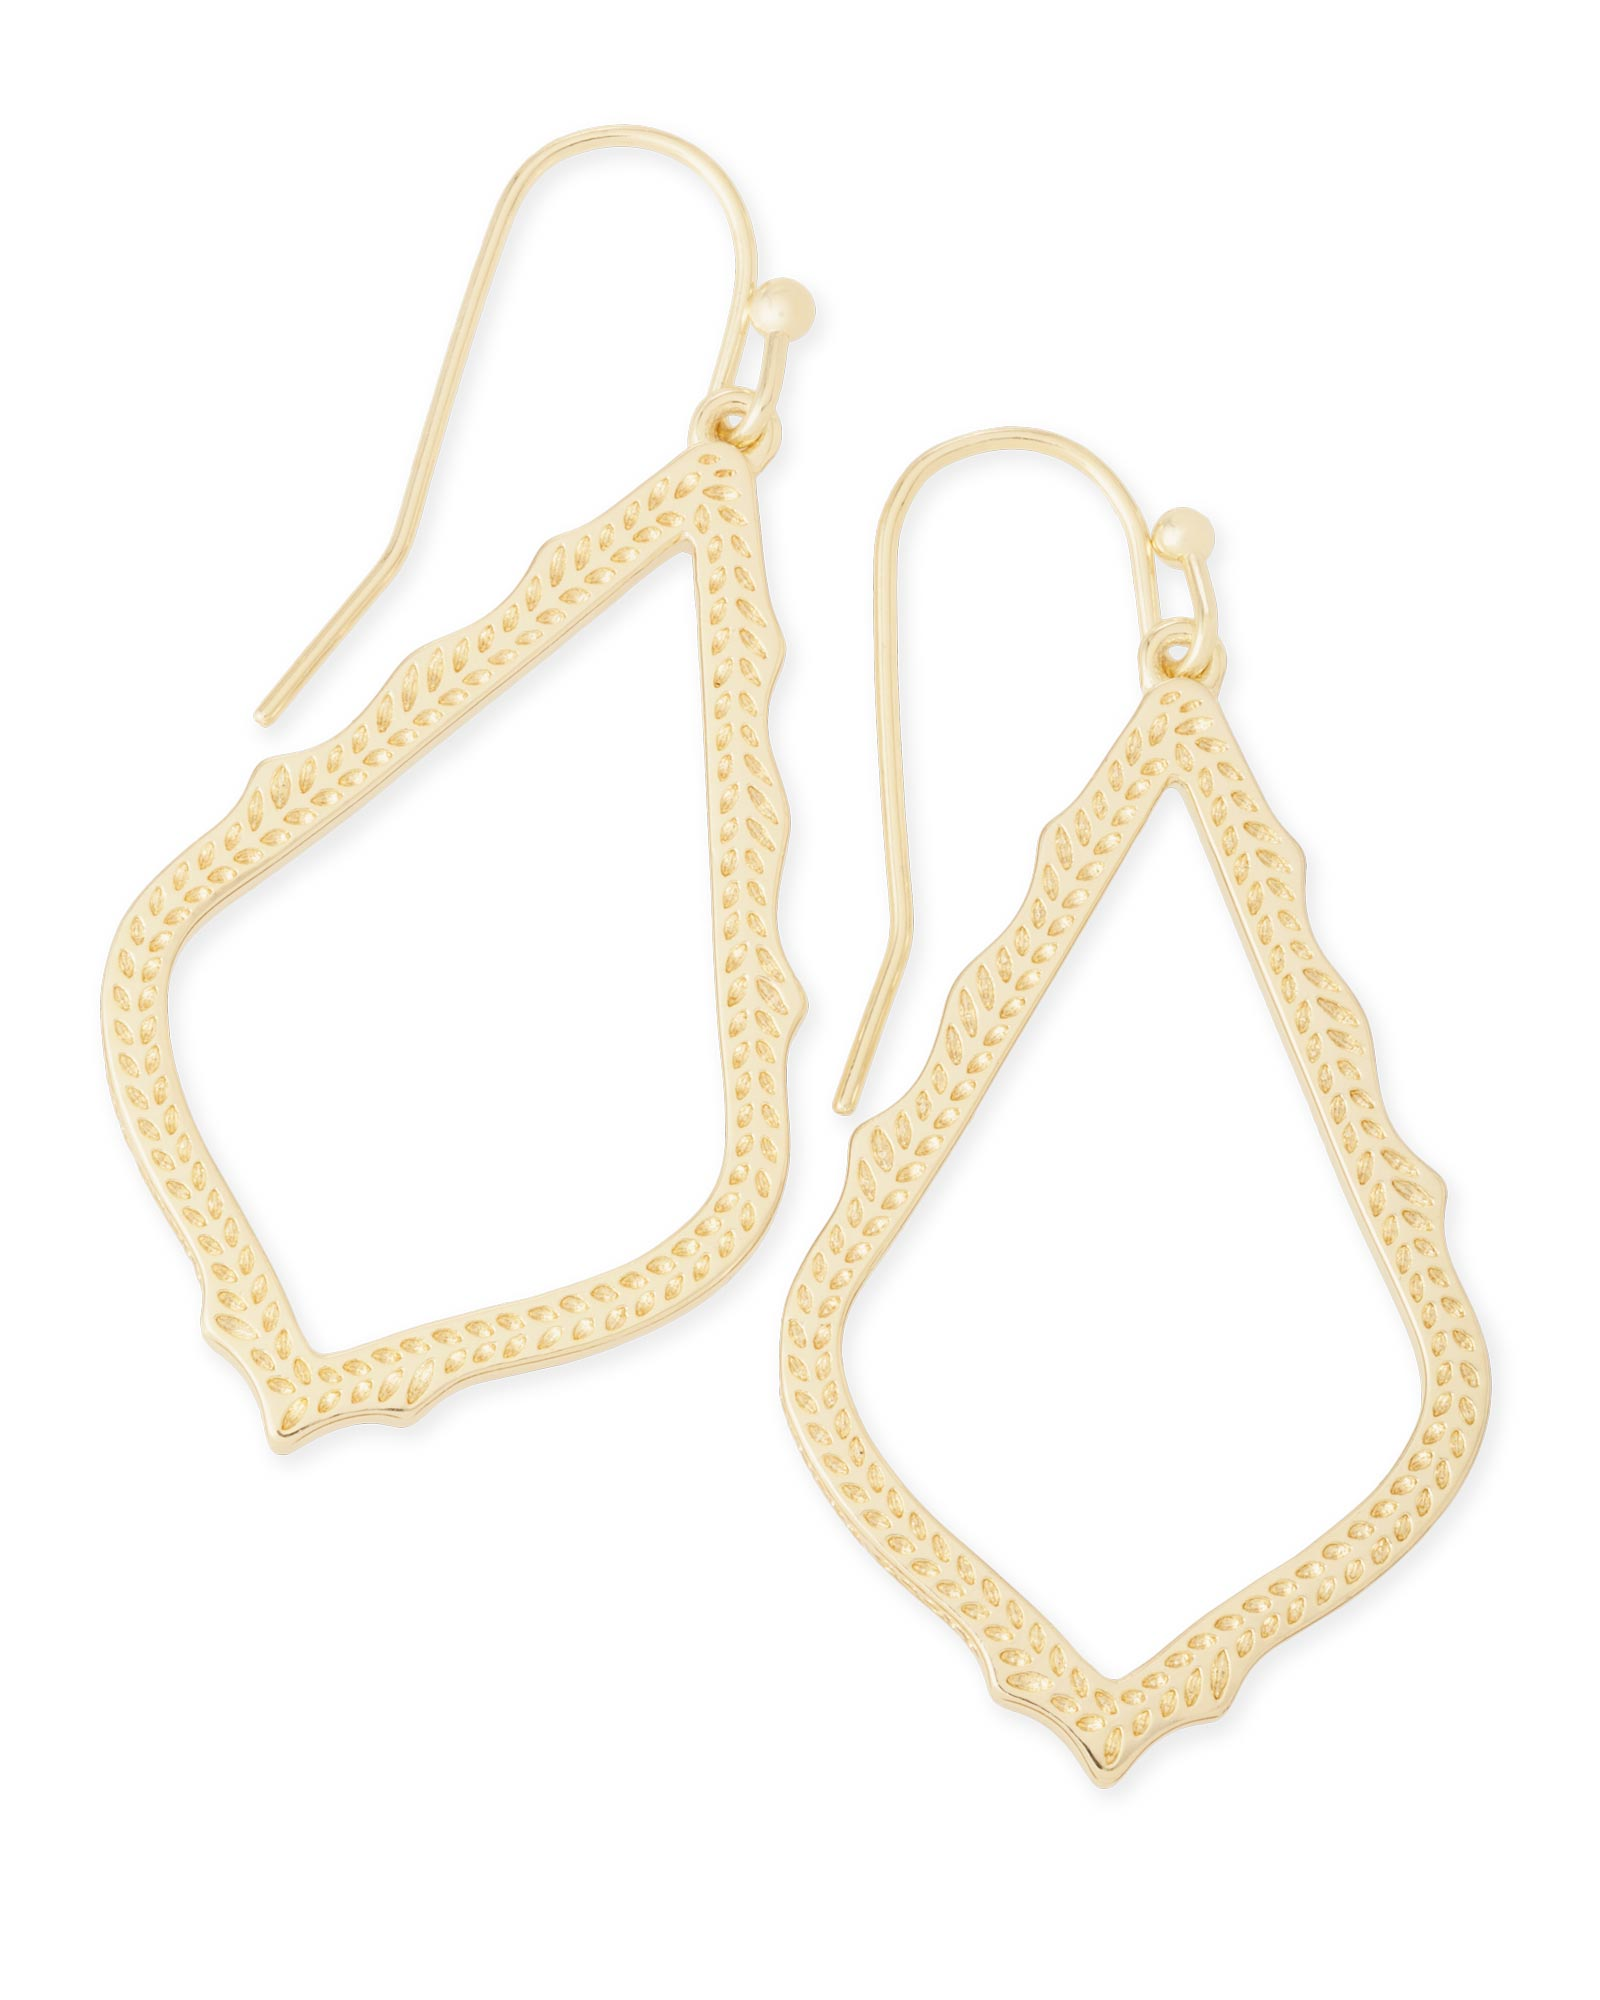 Sophia Drop Earrings in Gold